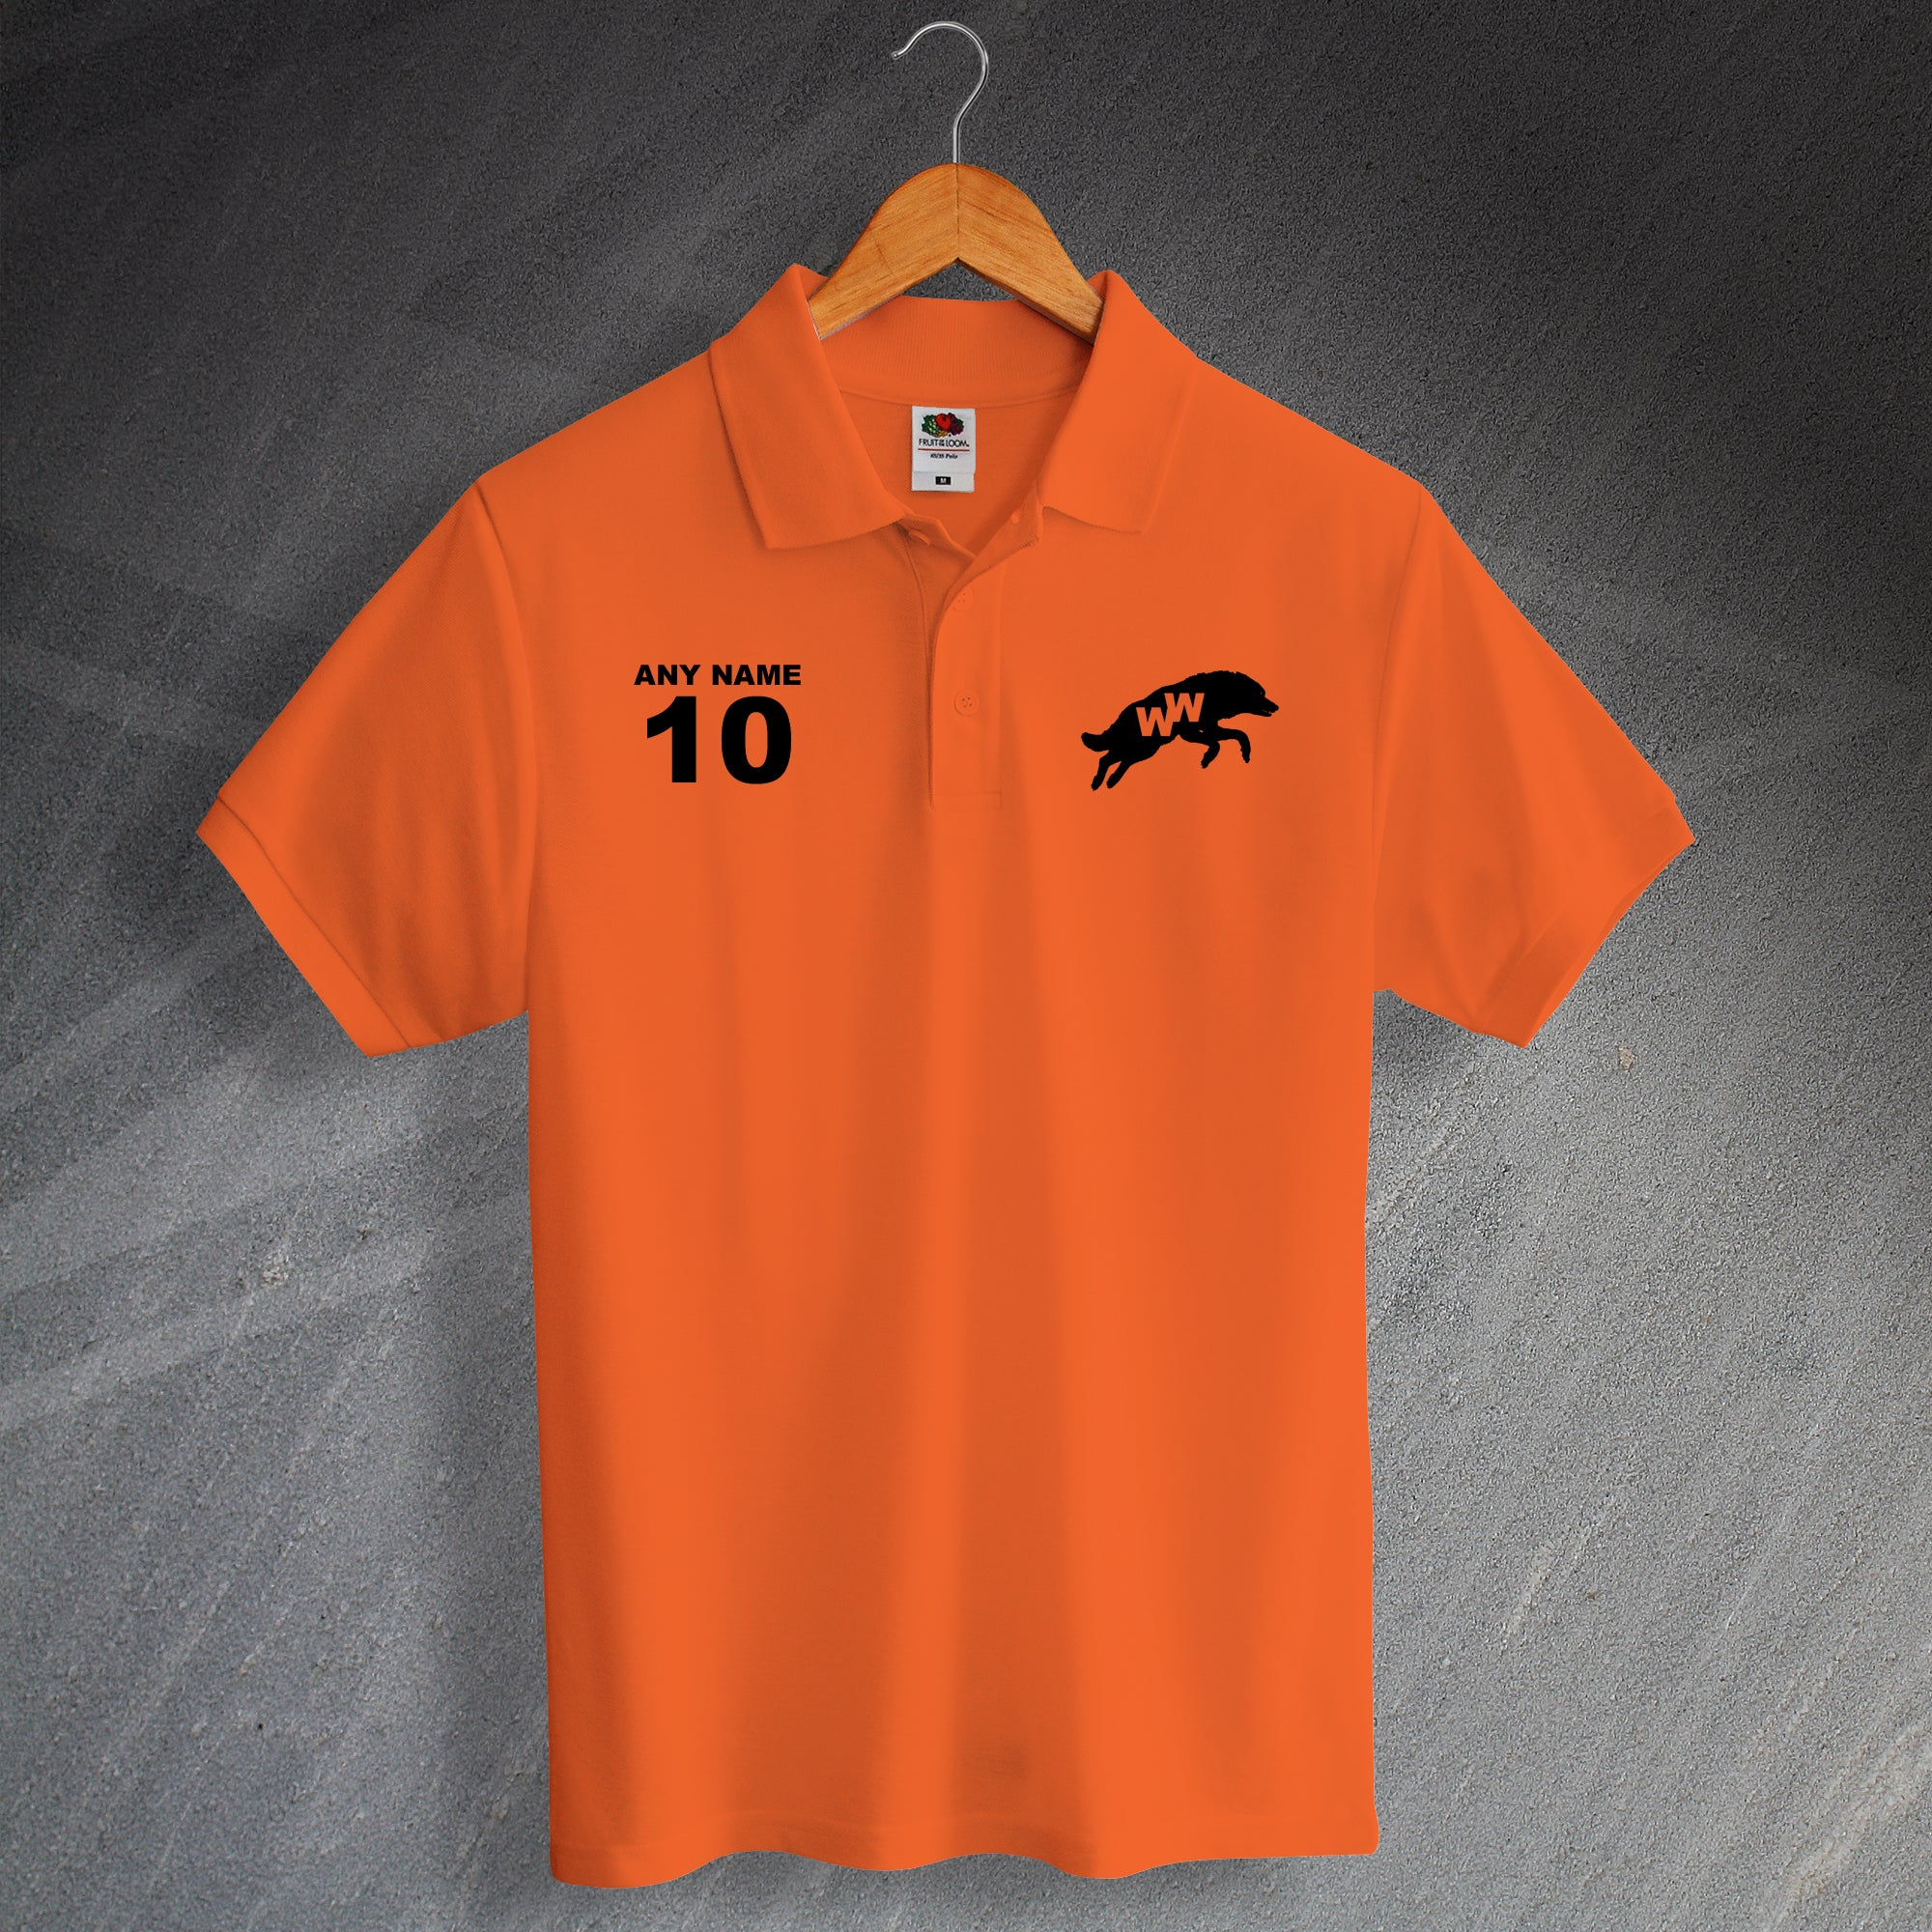 Personalized Polo Shirt Design Bcd Tofu House